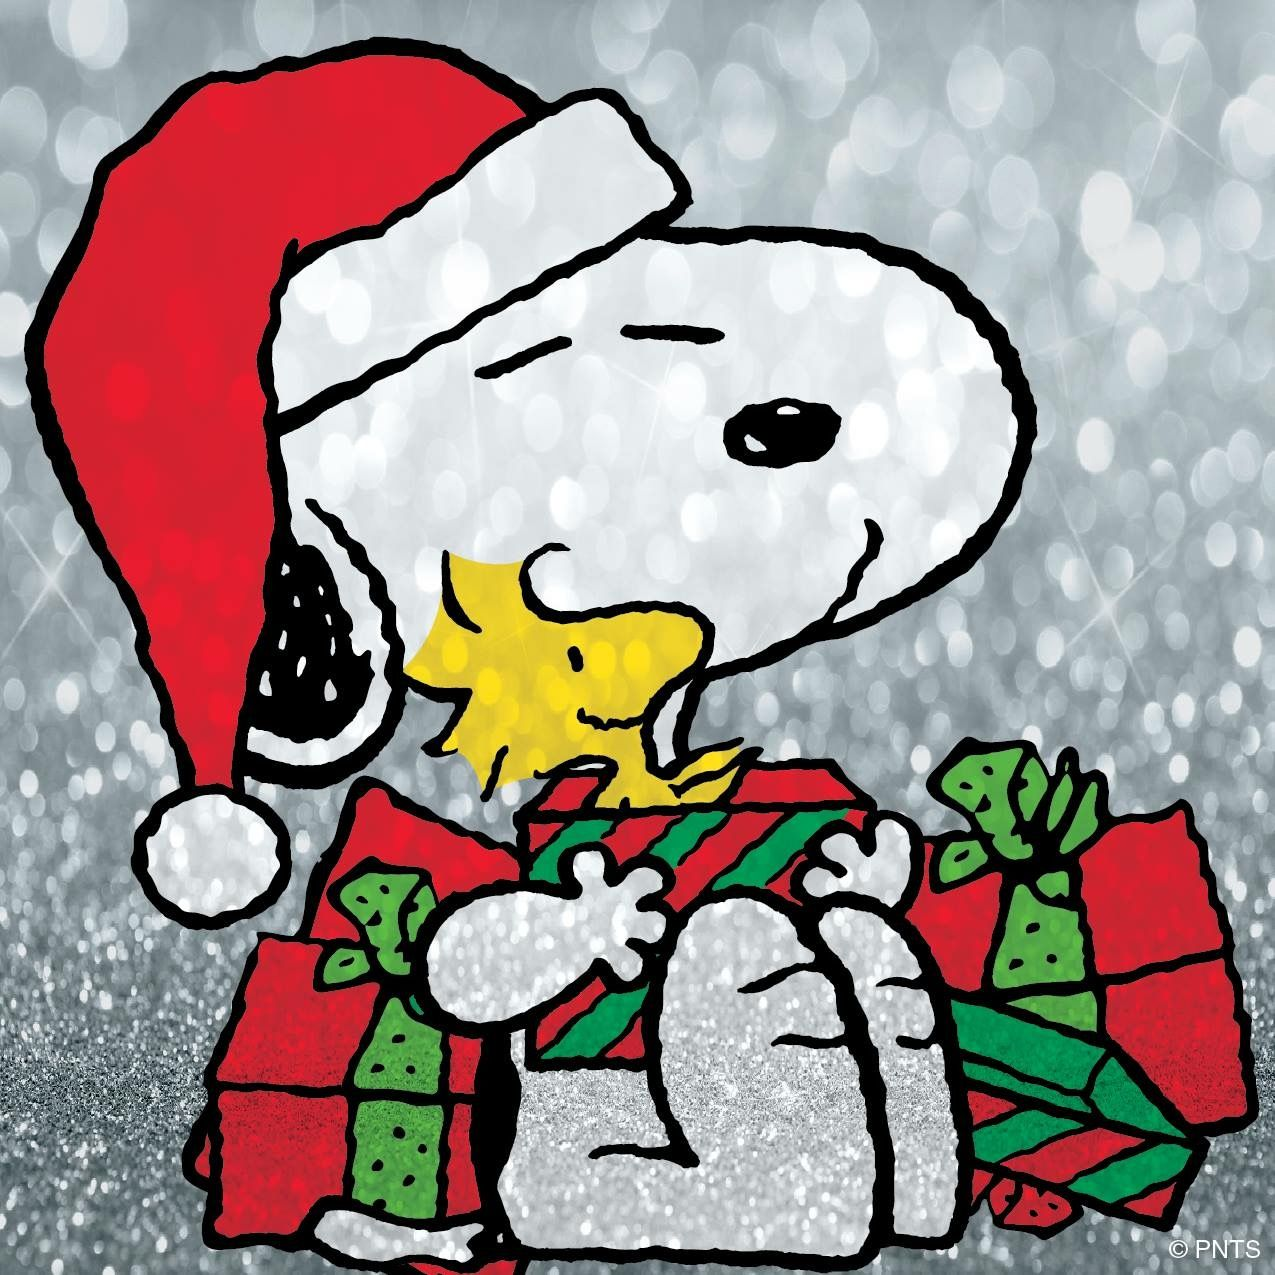 Christmas gifts brighten up the spirit ♪(๑ᴖ◡ᴖ๑)♪ #Snoopy ...